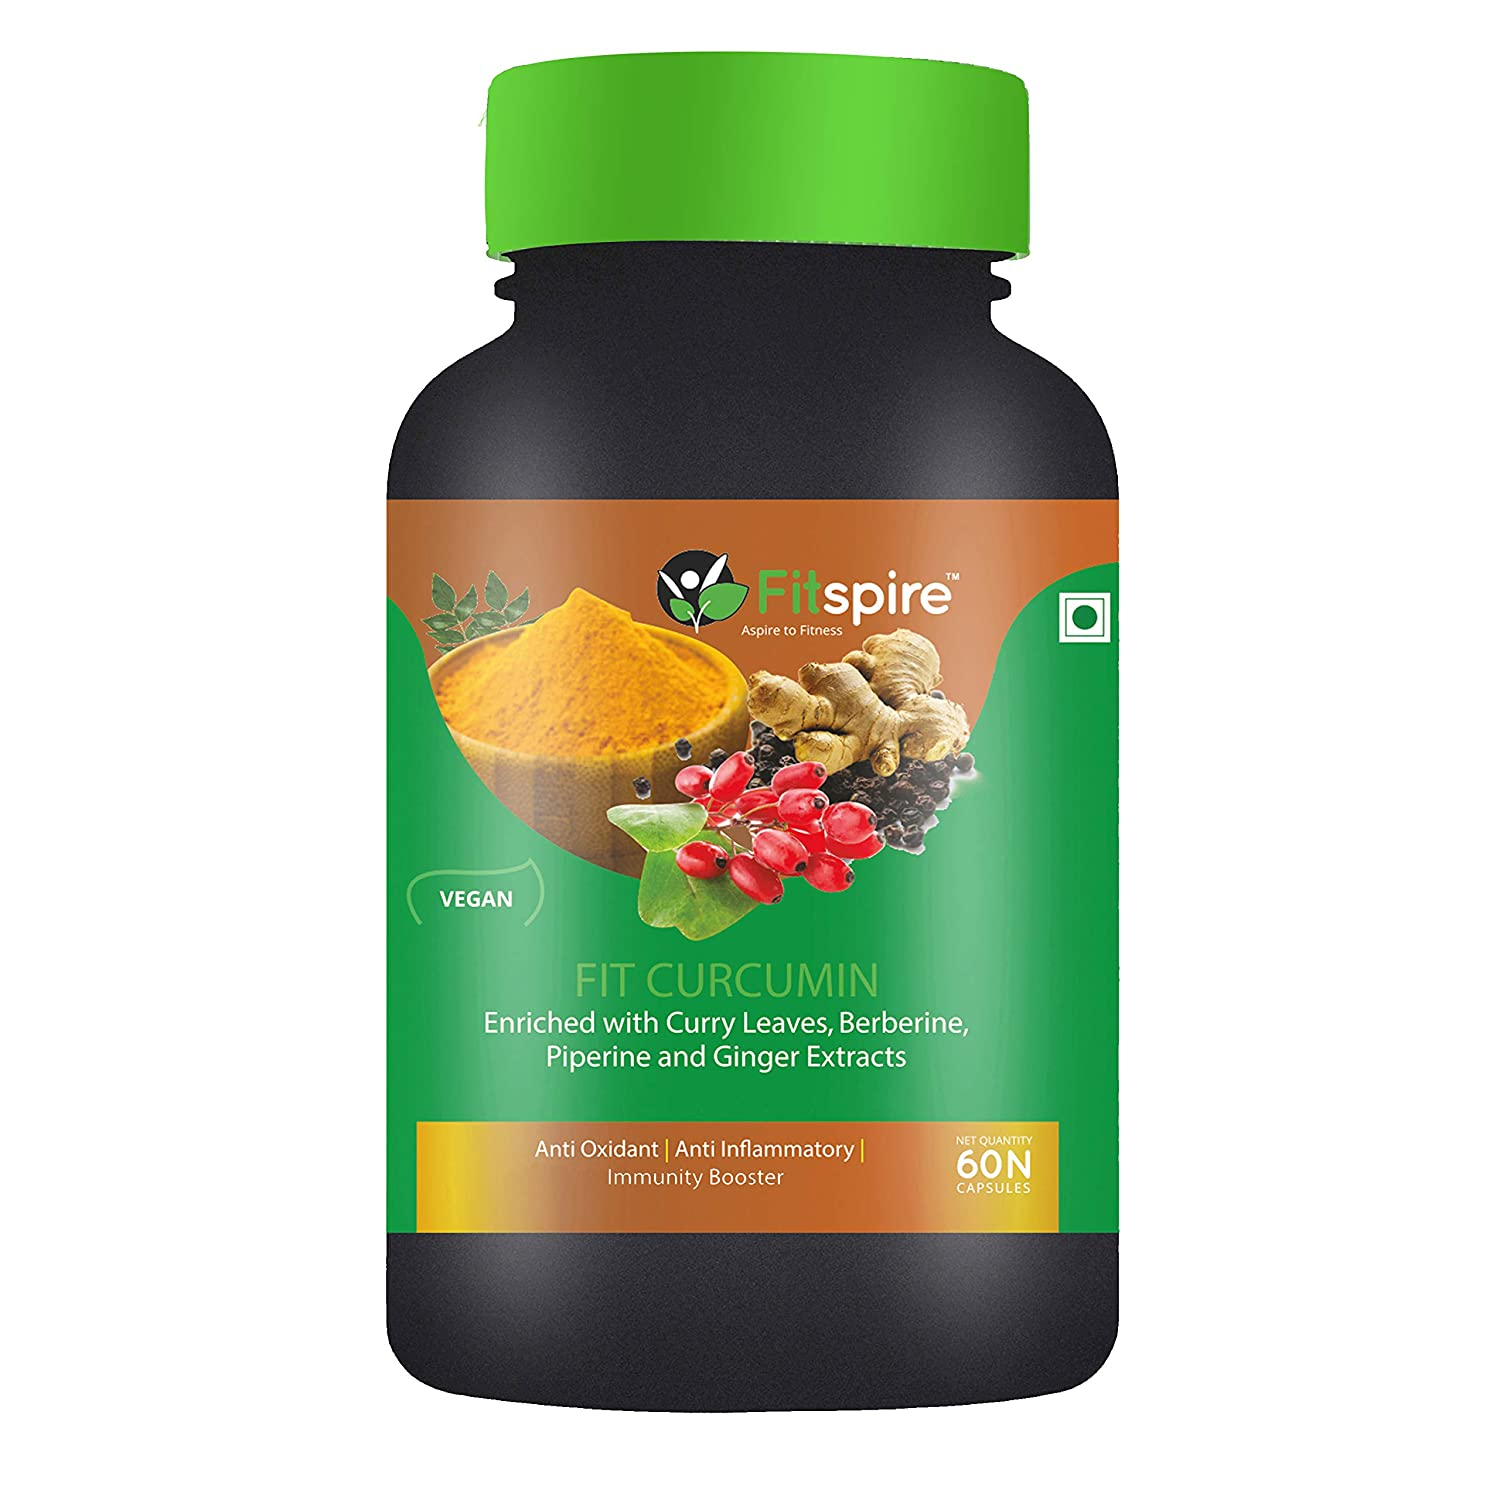 Fitspire Fit Curcumin Immunity Booster (Enriched with Curcuminoids, Curry Leaves, Berberine, Piperine & Ginger Extracts - 60 Capsules